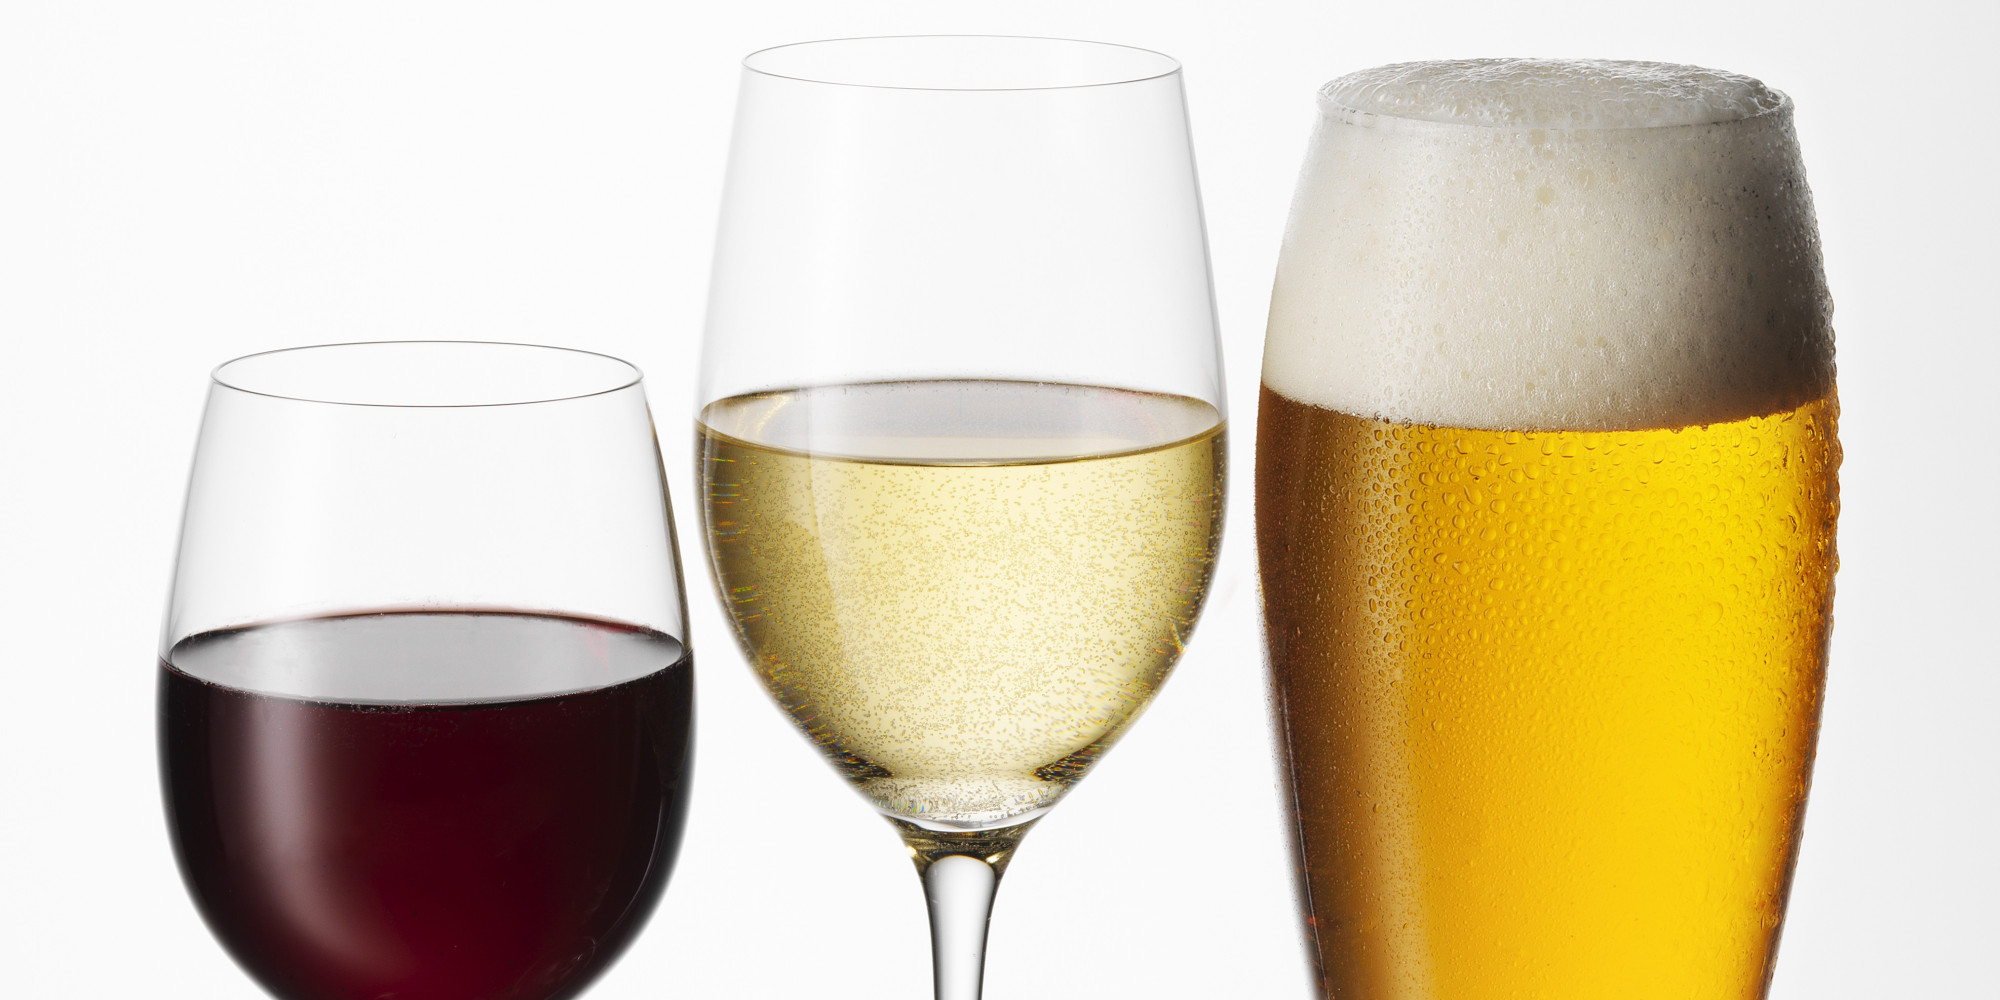 how to get drunk off wine fast